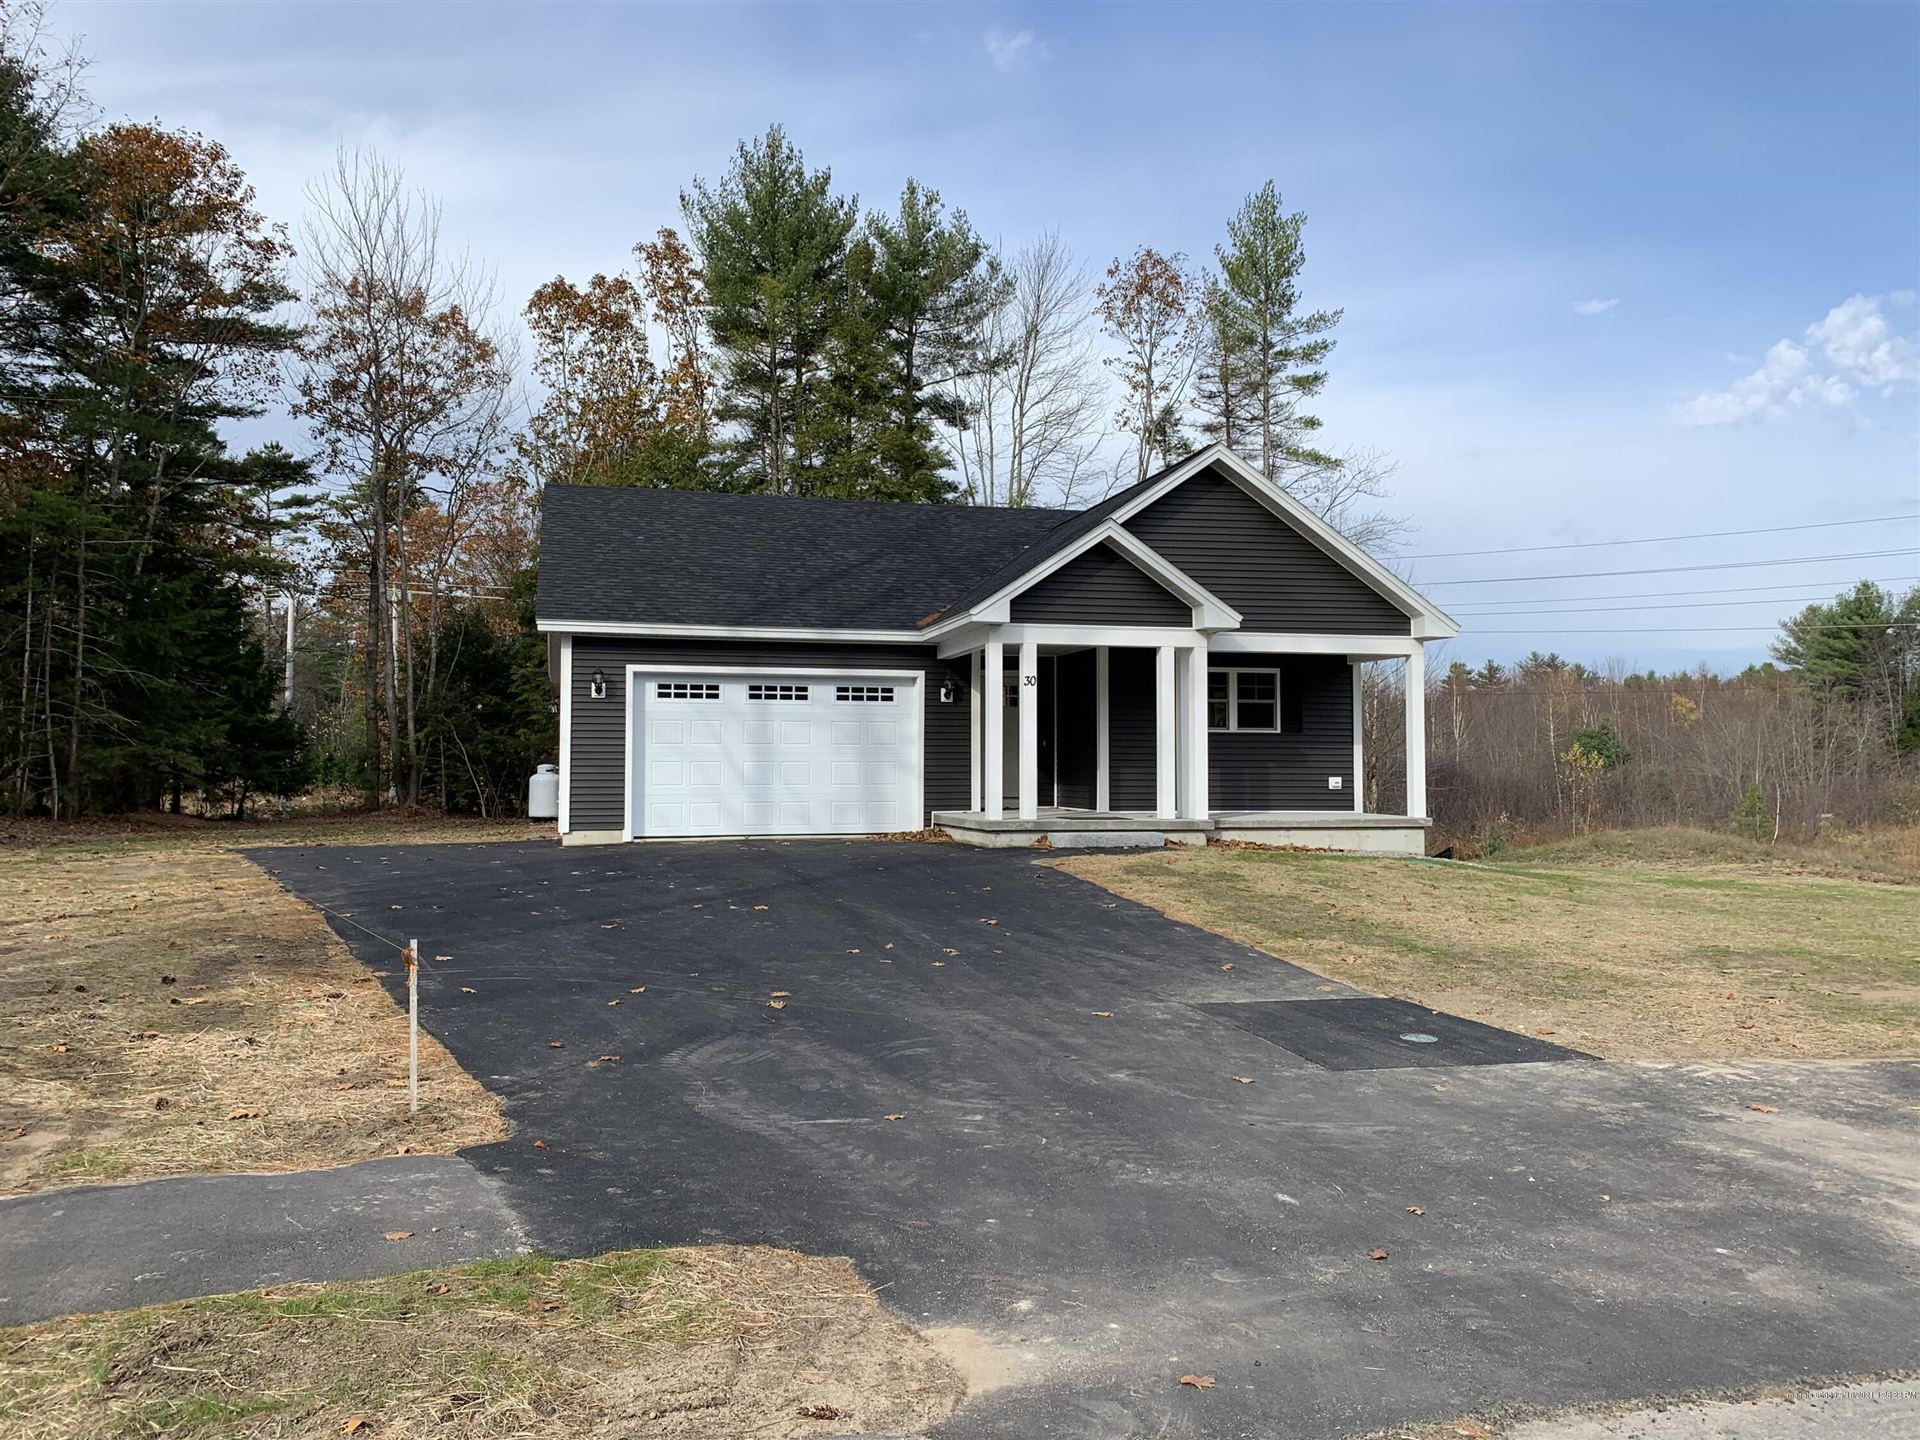 Photo of 9 Trudy Circle, Old Orchard Beach, ME 04064 (MLS # 1491560)